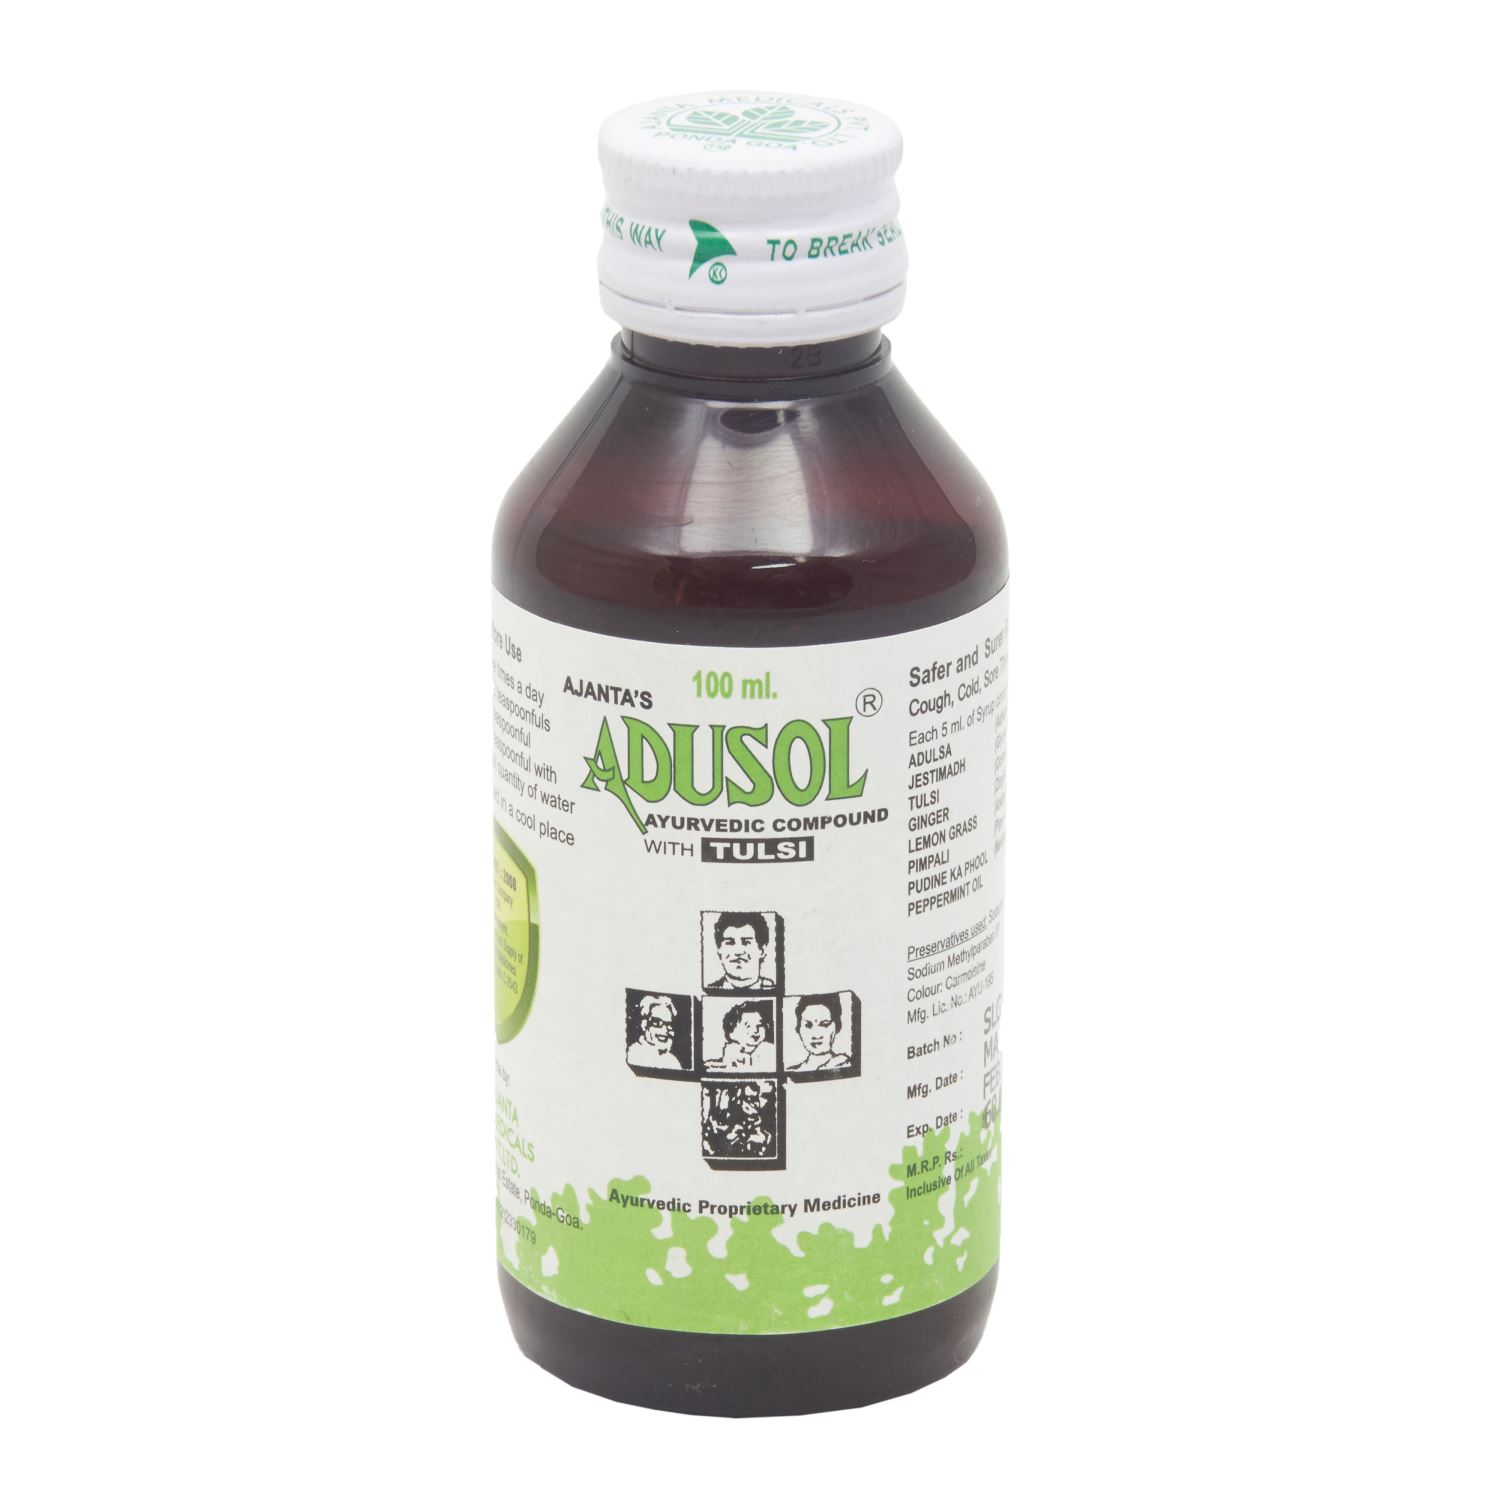 Adusol Cough Syrup - 100 ml